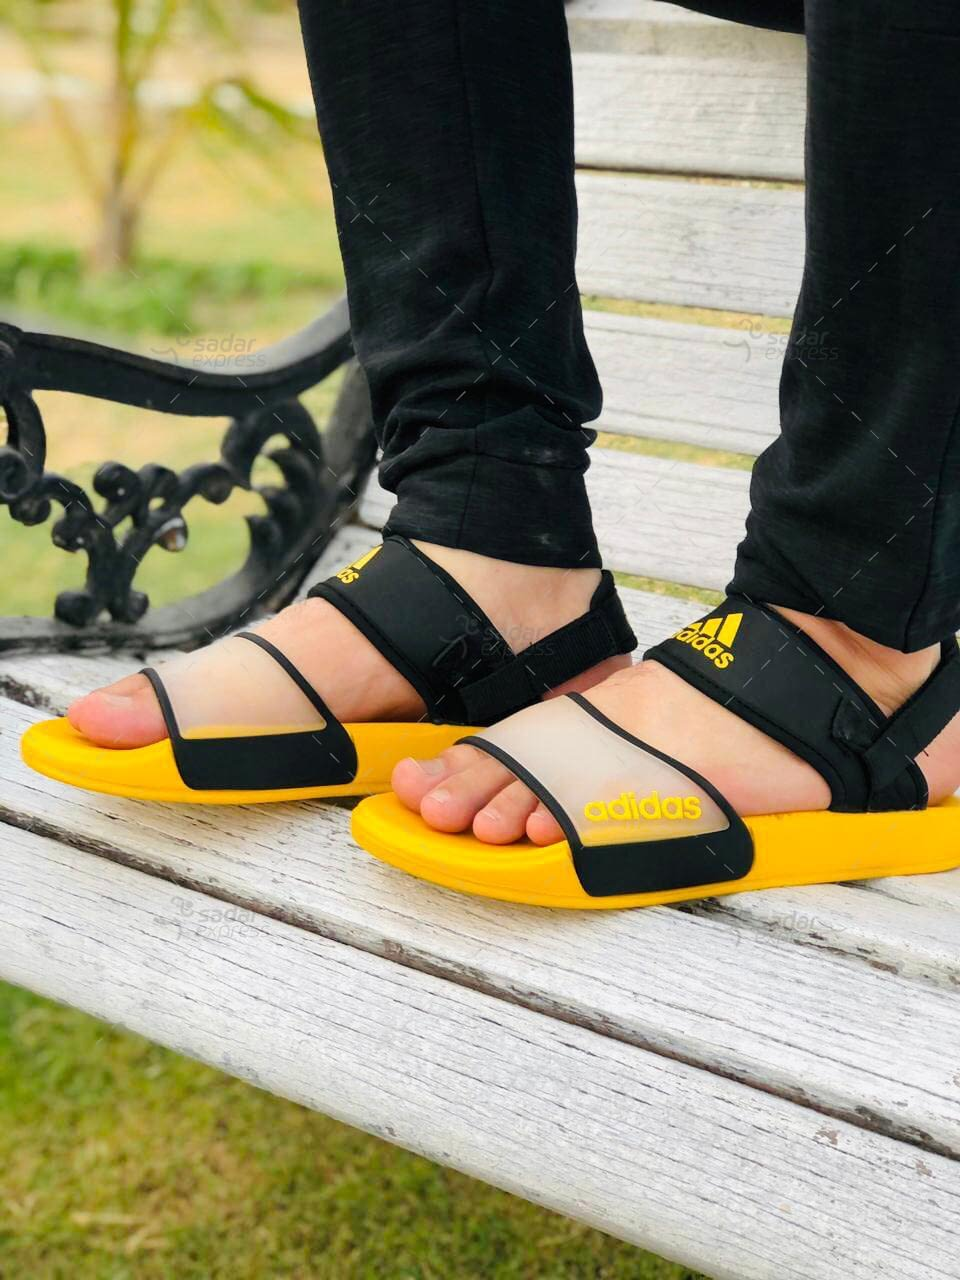 sports silicon rubber sandal for men 3